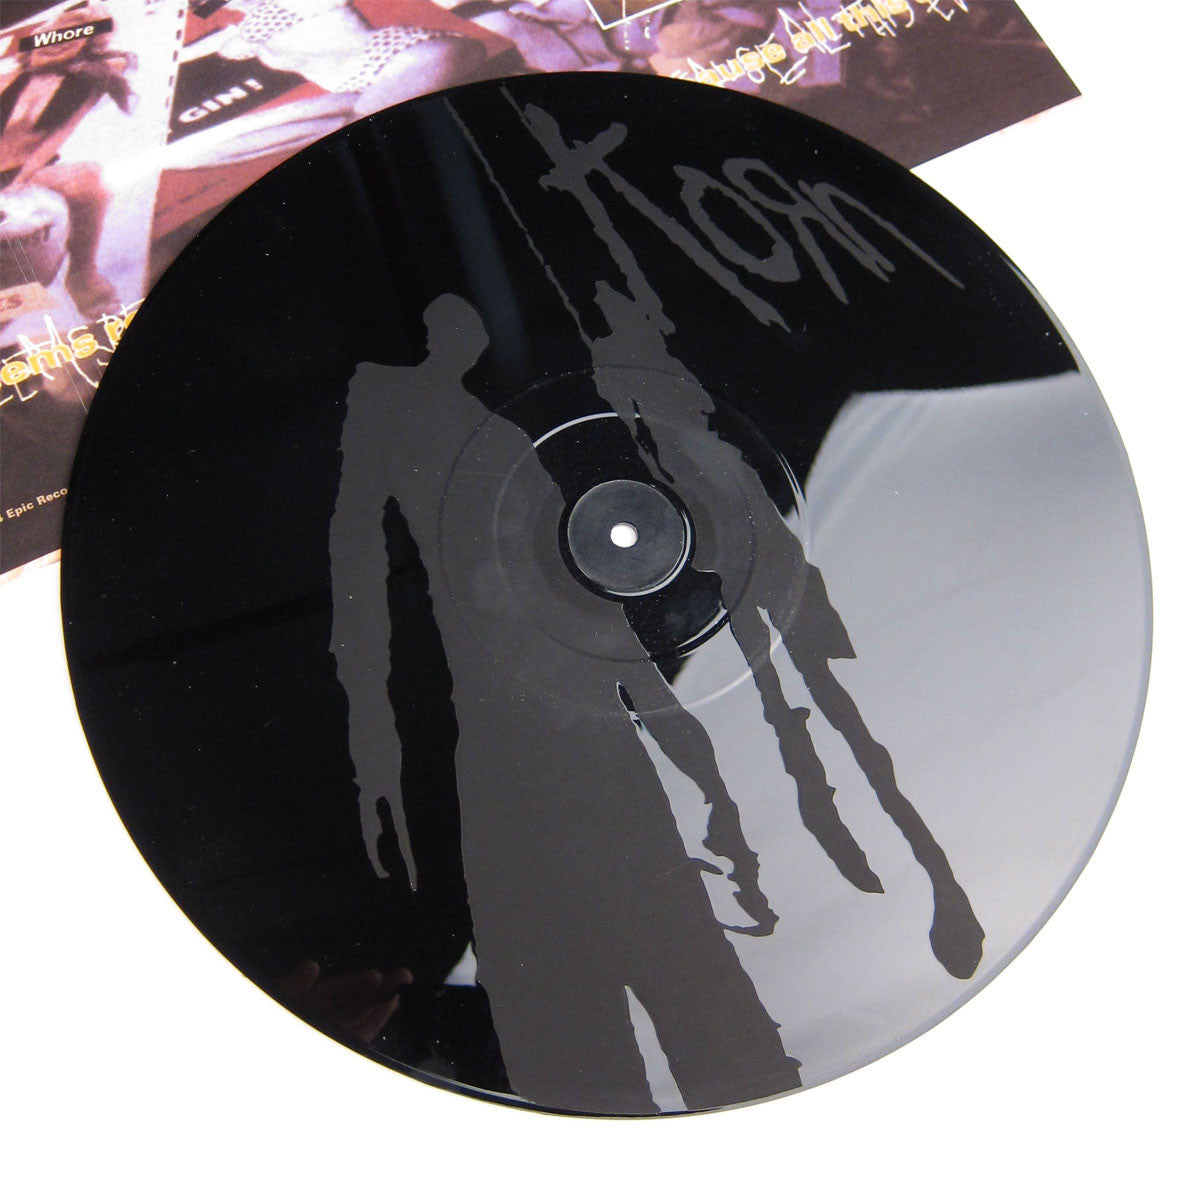 Korn: Korn Vinyl 2LP (Record Store Day) detail